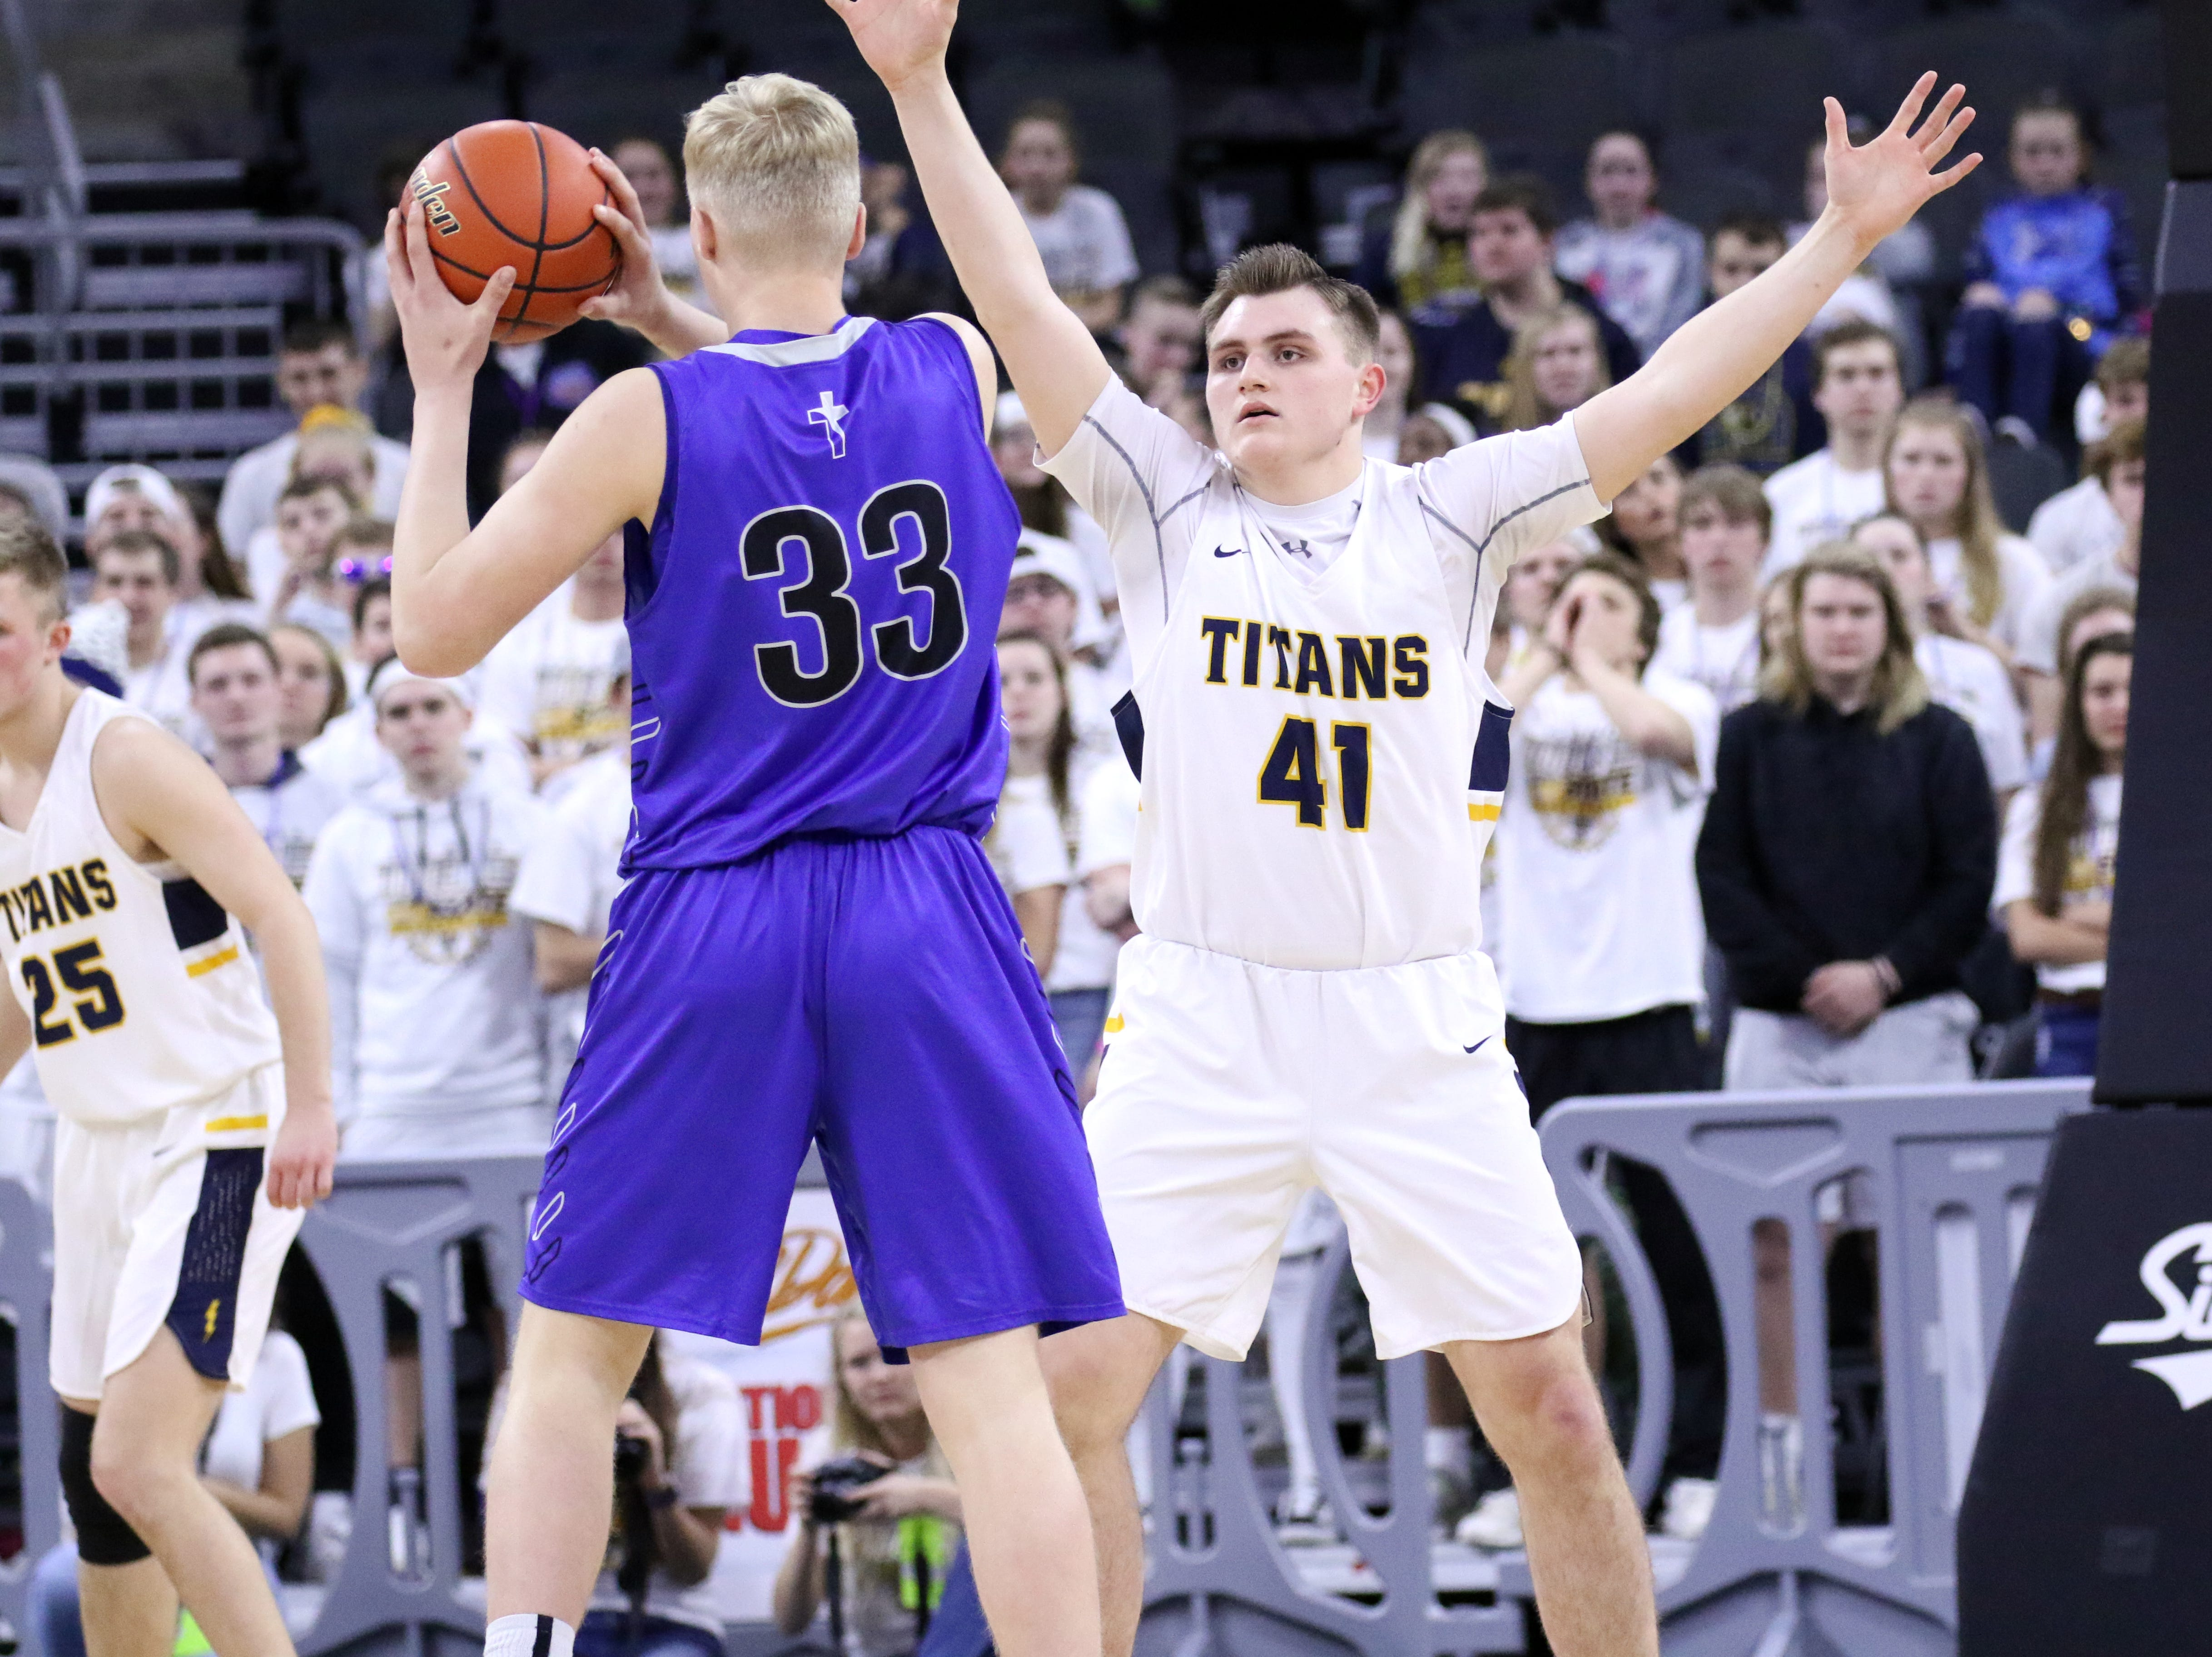 Kaleb Joffer of Tea Area applies defensive pressure to Zach Witte of Sioux Falls Christian during Saturday's Class A title game at the Premier Center.